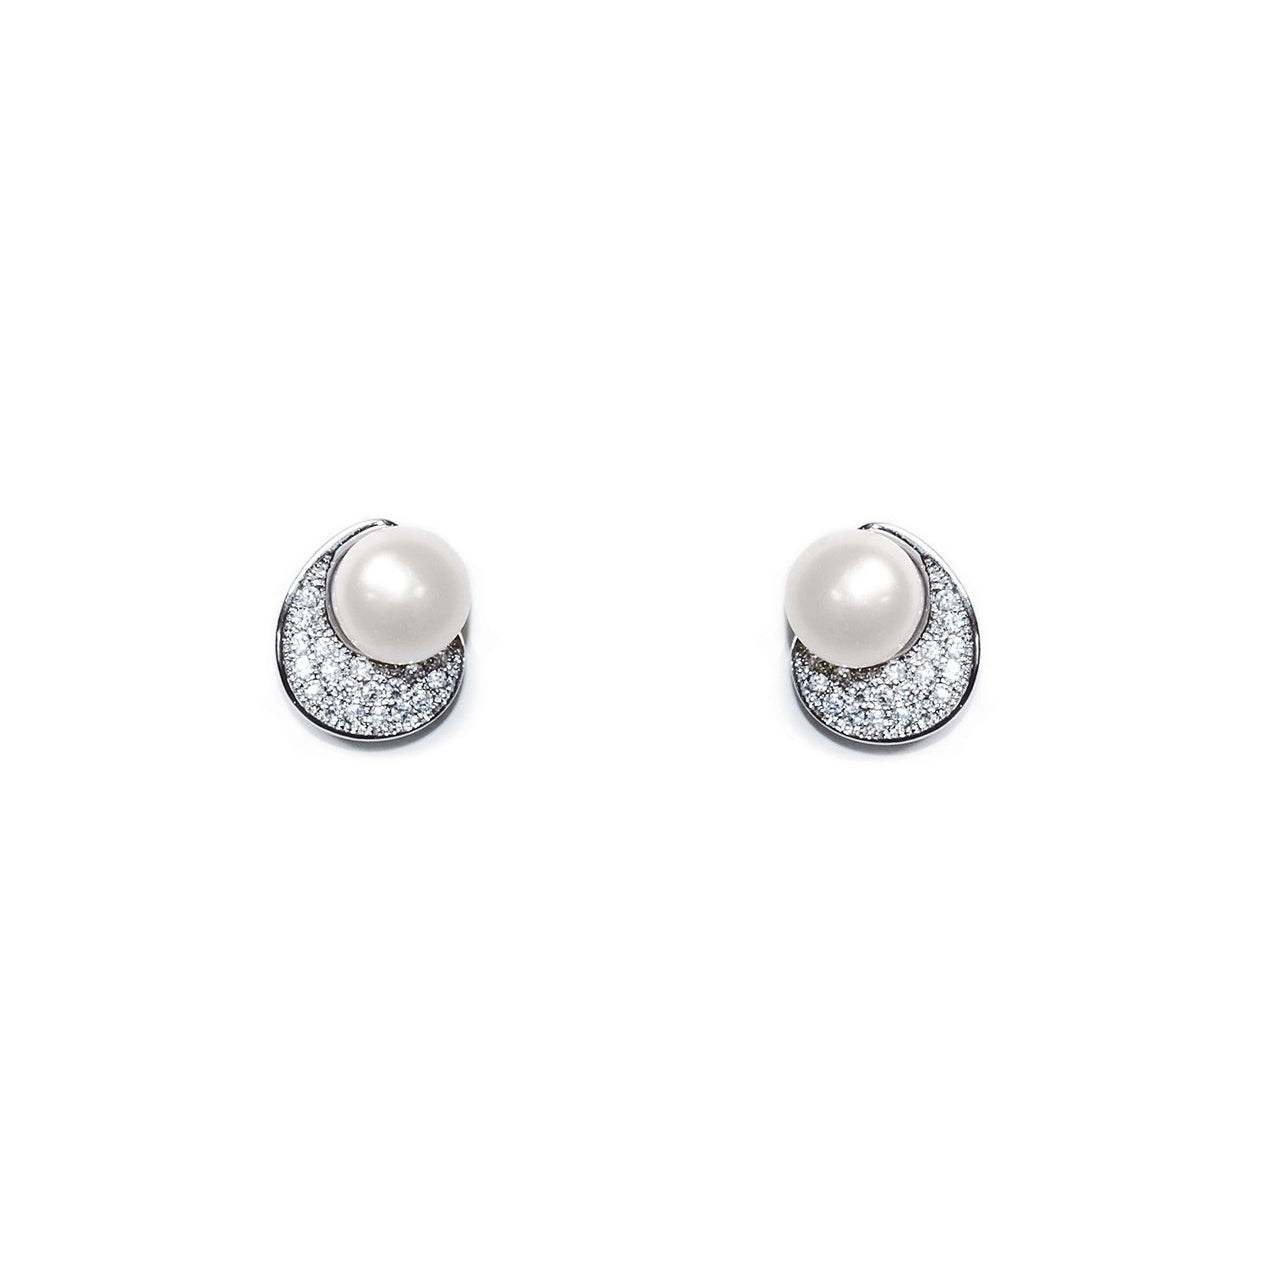 BOUCLES D'OREILLES<br>Atlanta - MP Paris